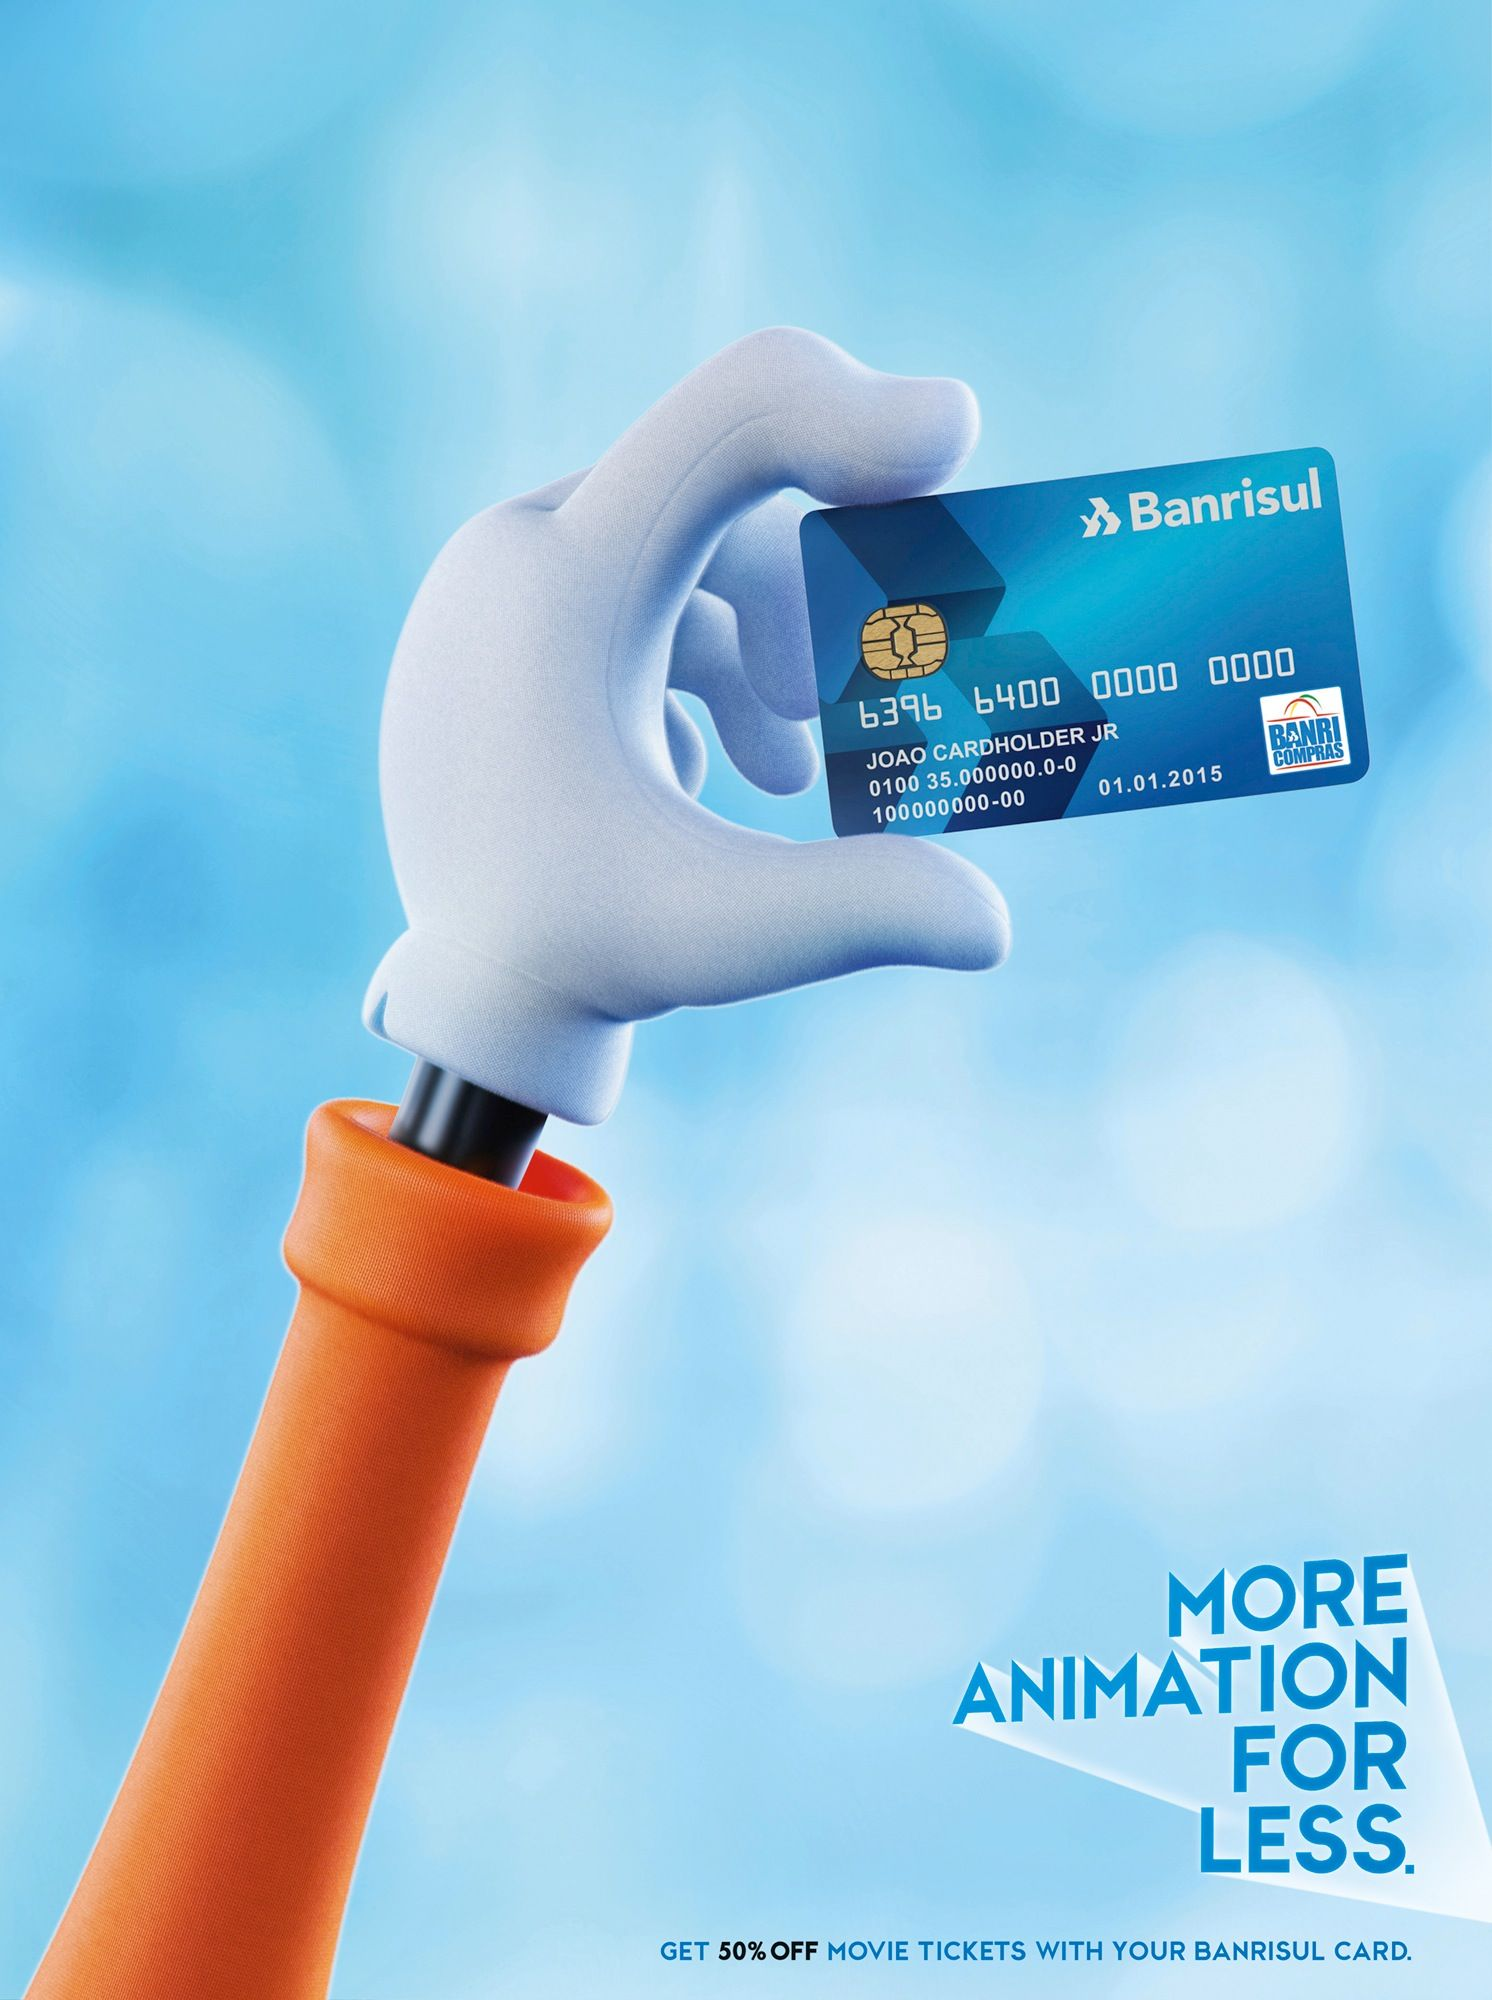 More Action For Less Credit Card Design Banks Ads Business Credit Cards